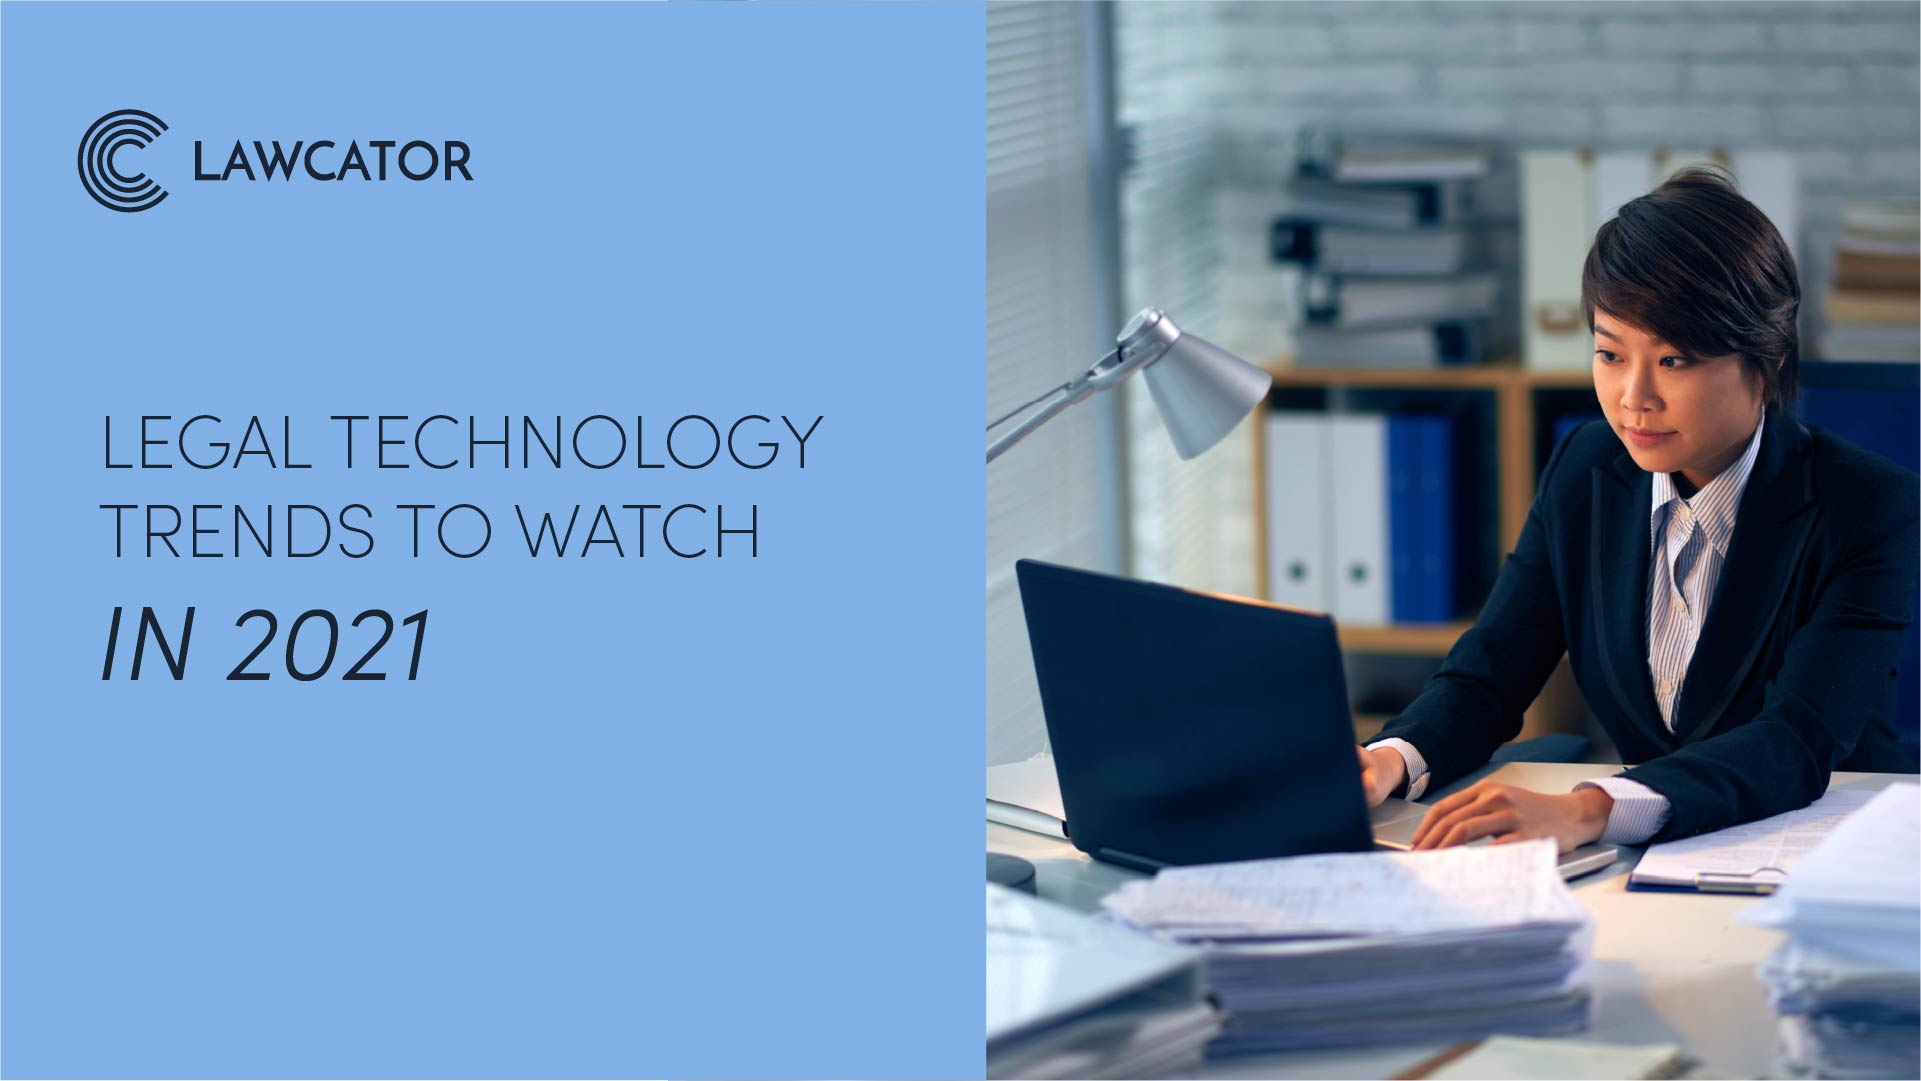 Legal Technology Trends to Watch in 2021